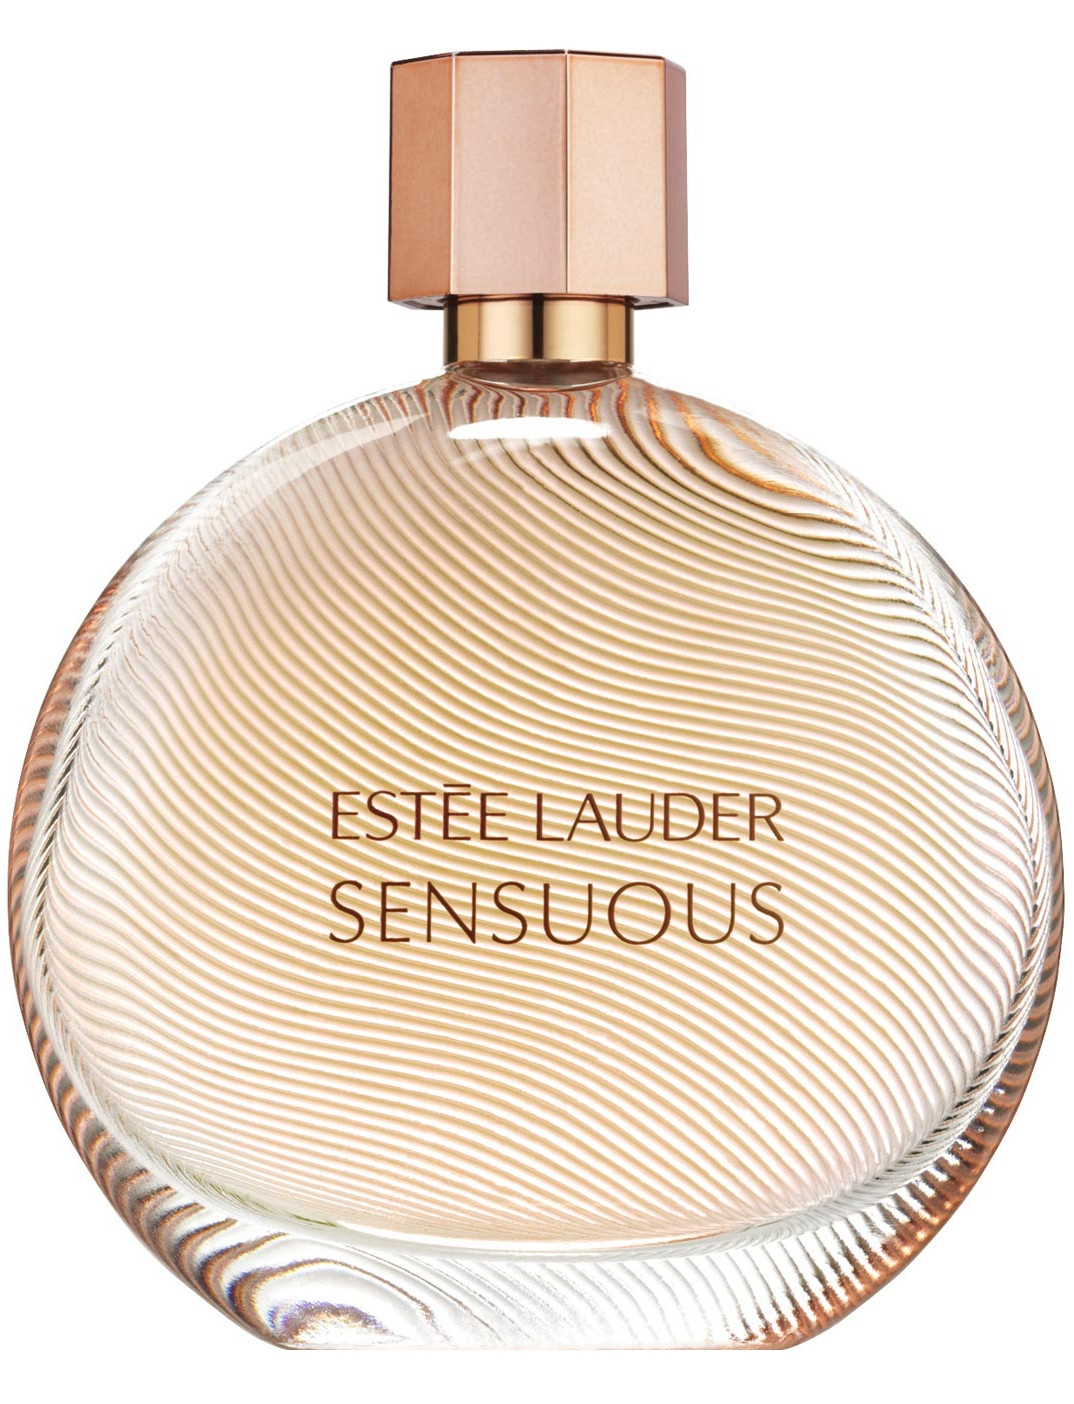 Estee Lauder Sensuous (W) edp 100ml